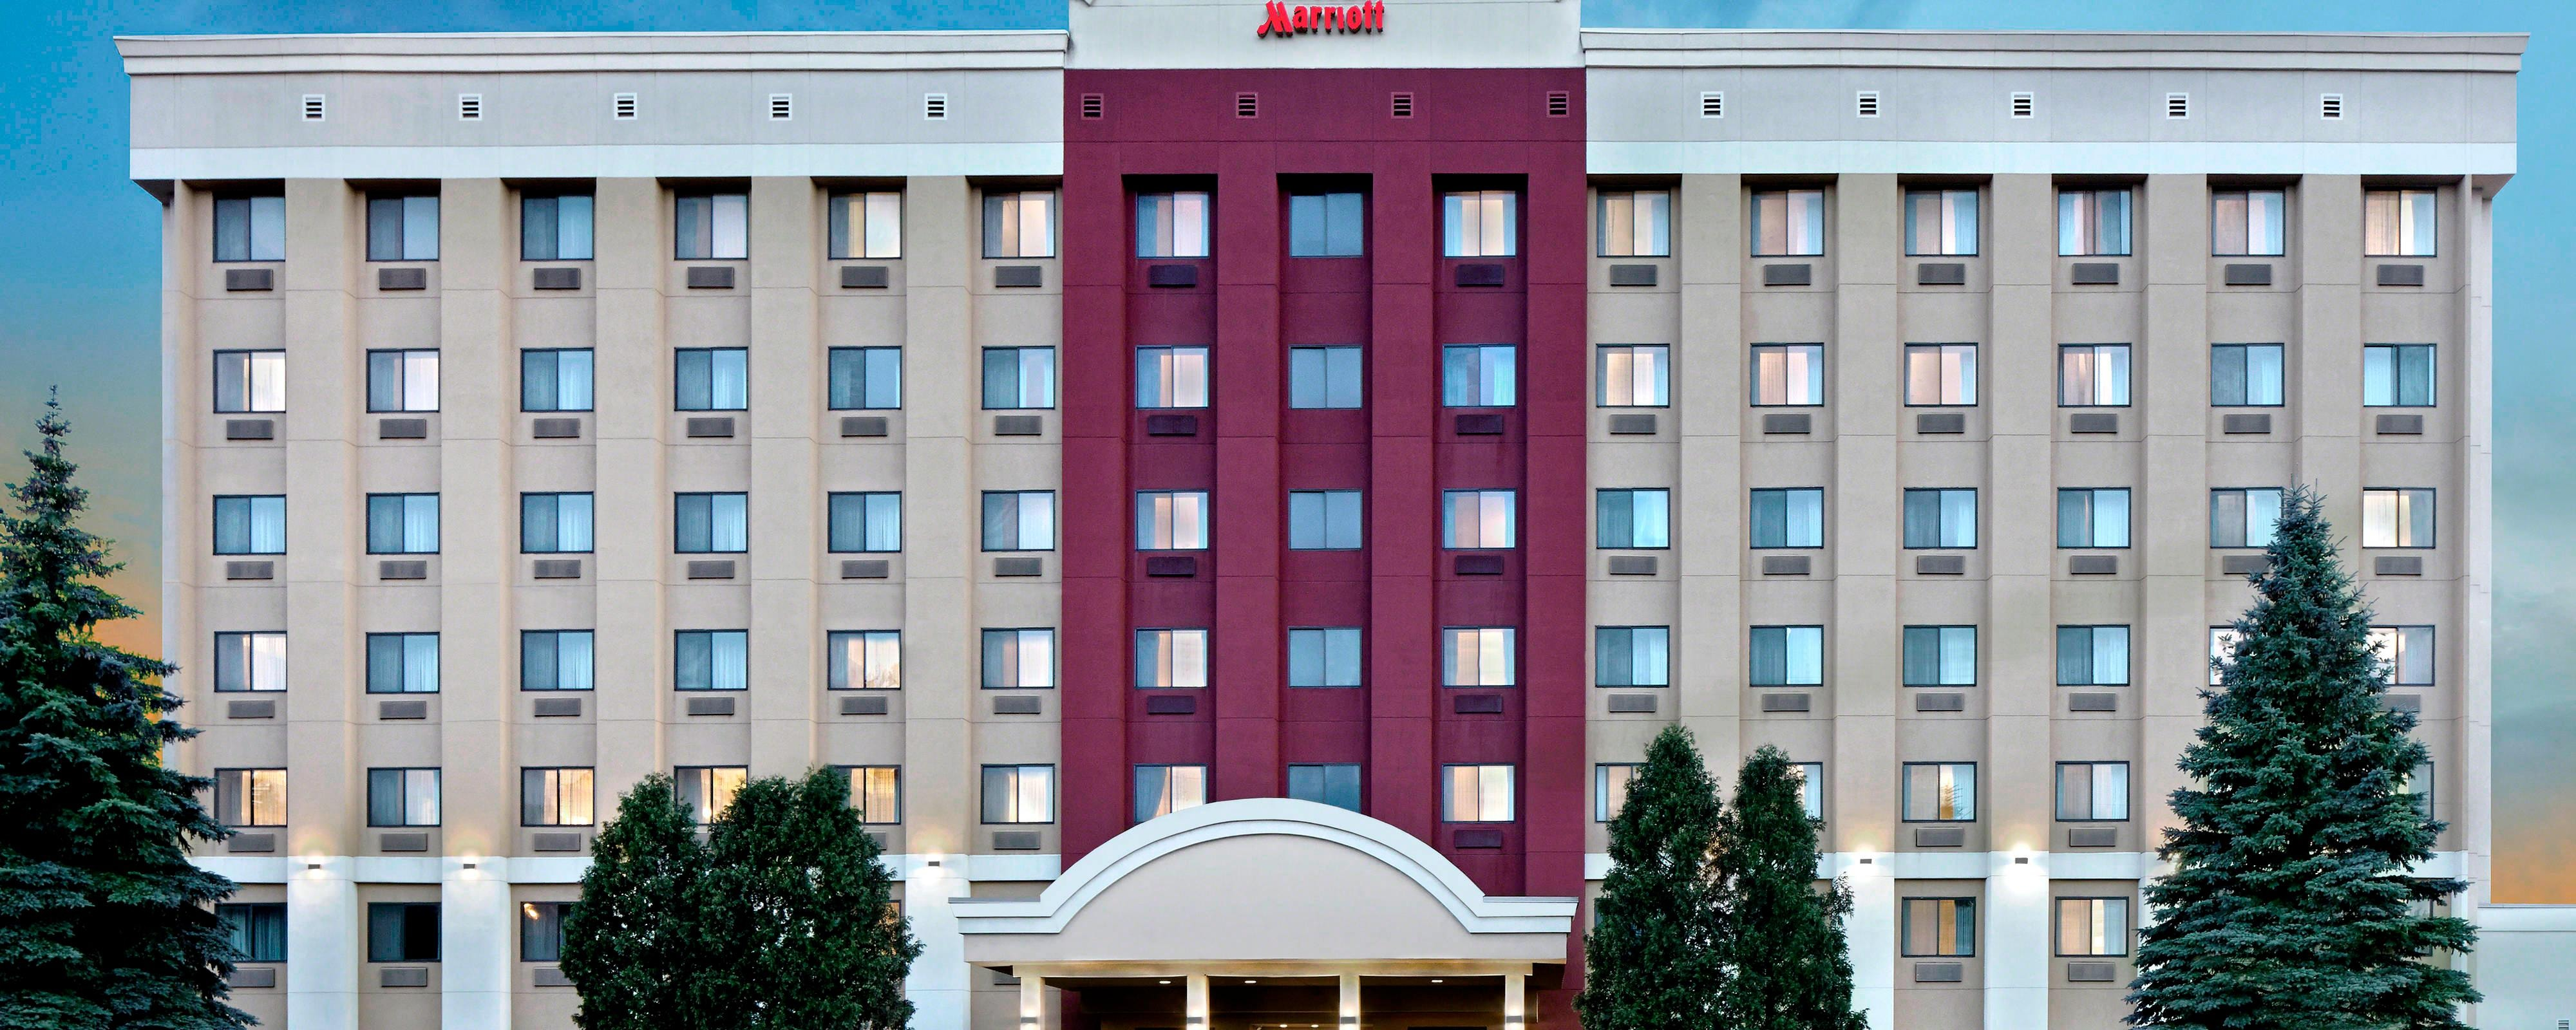 Downtown Albany Hotels Towneplace Suites Albany Downtownmedical